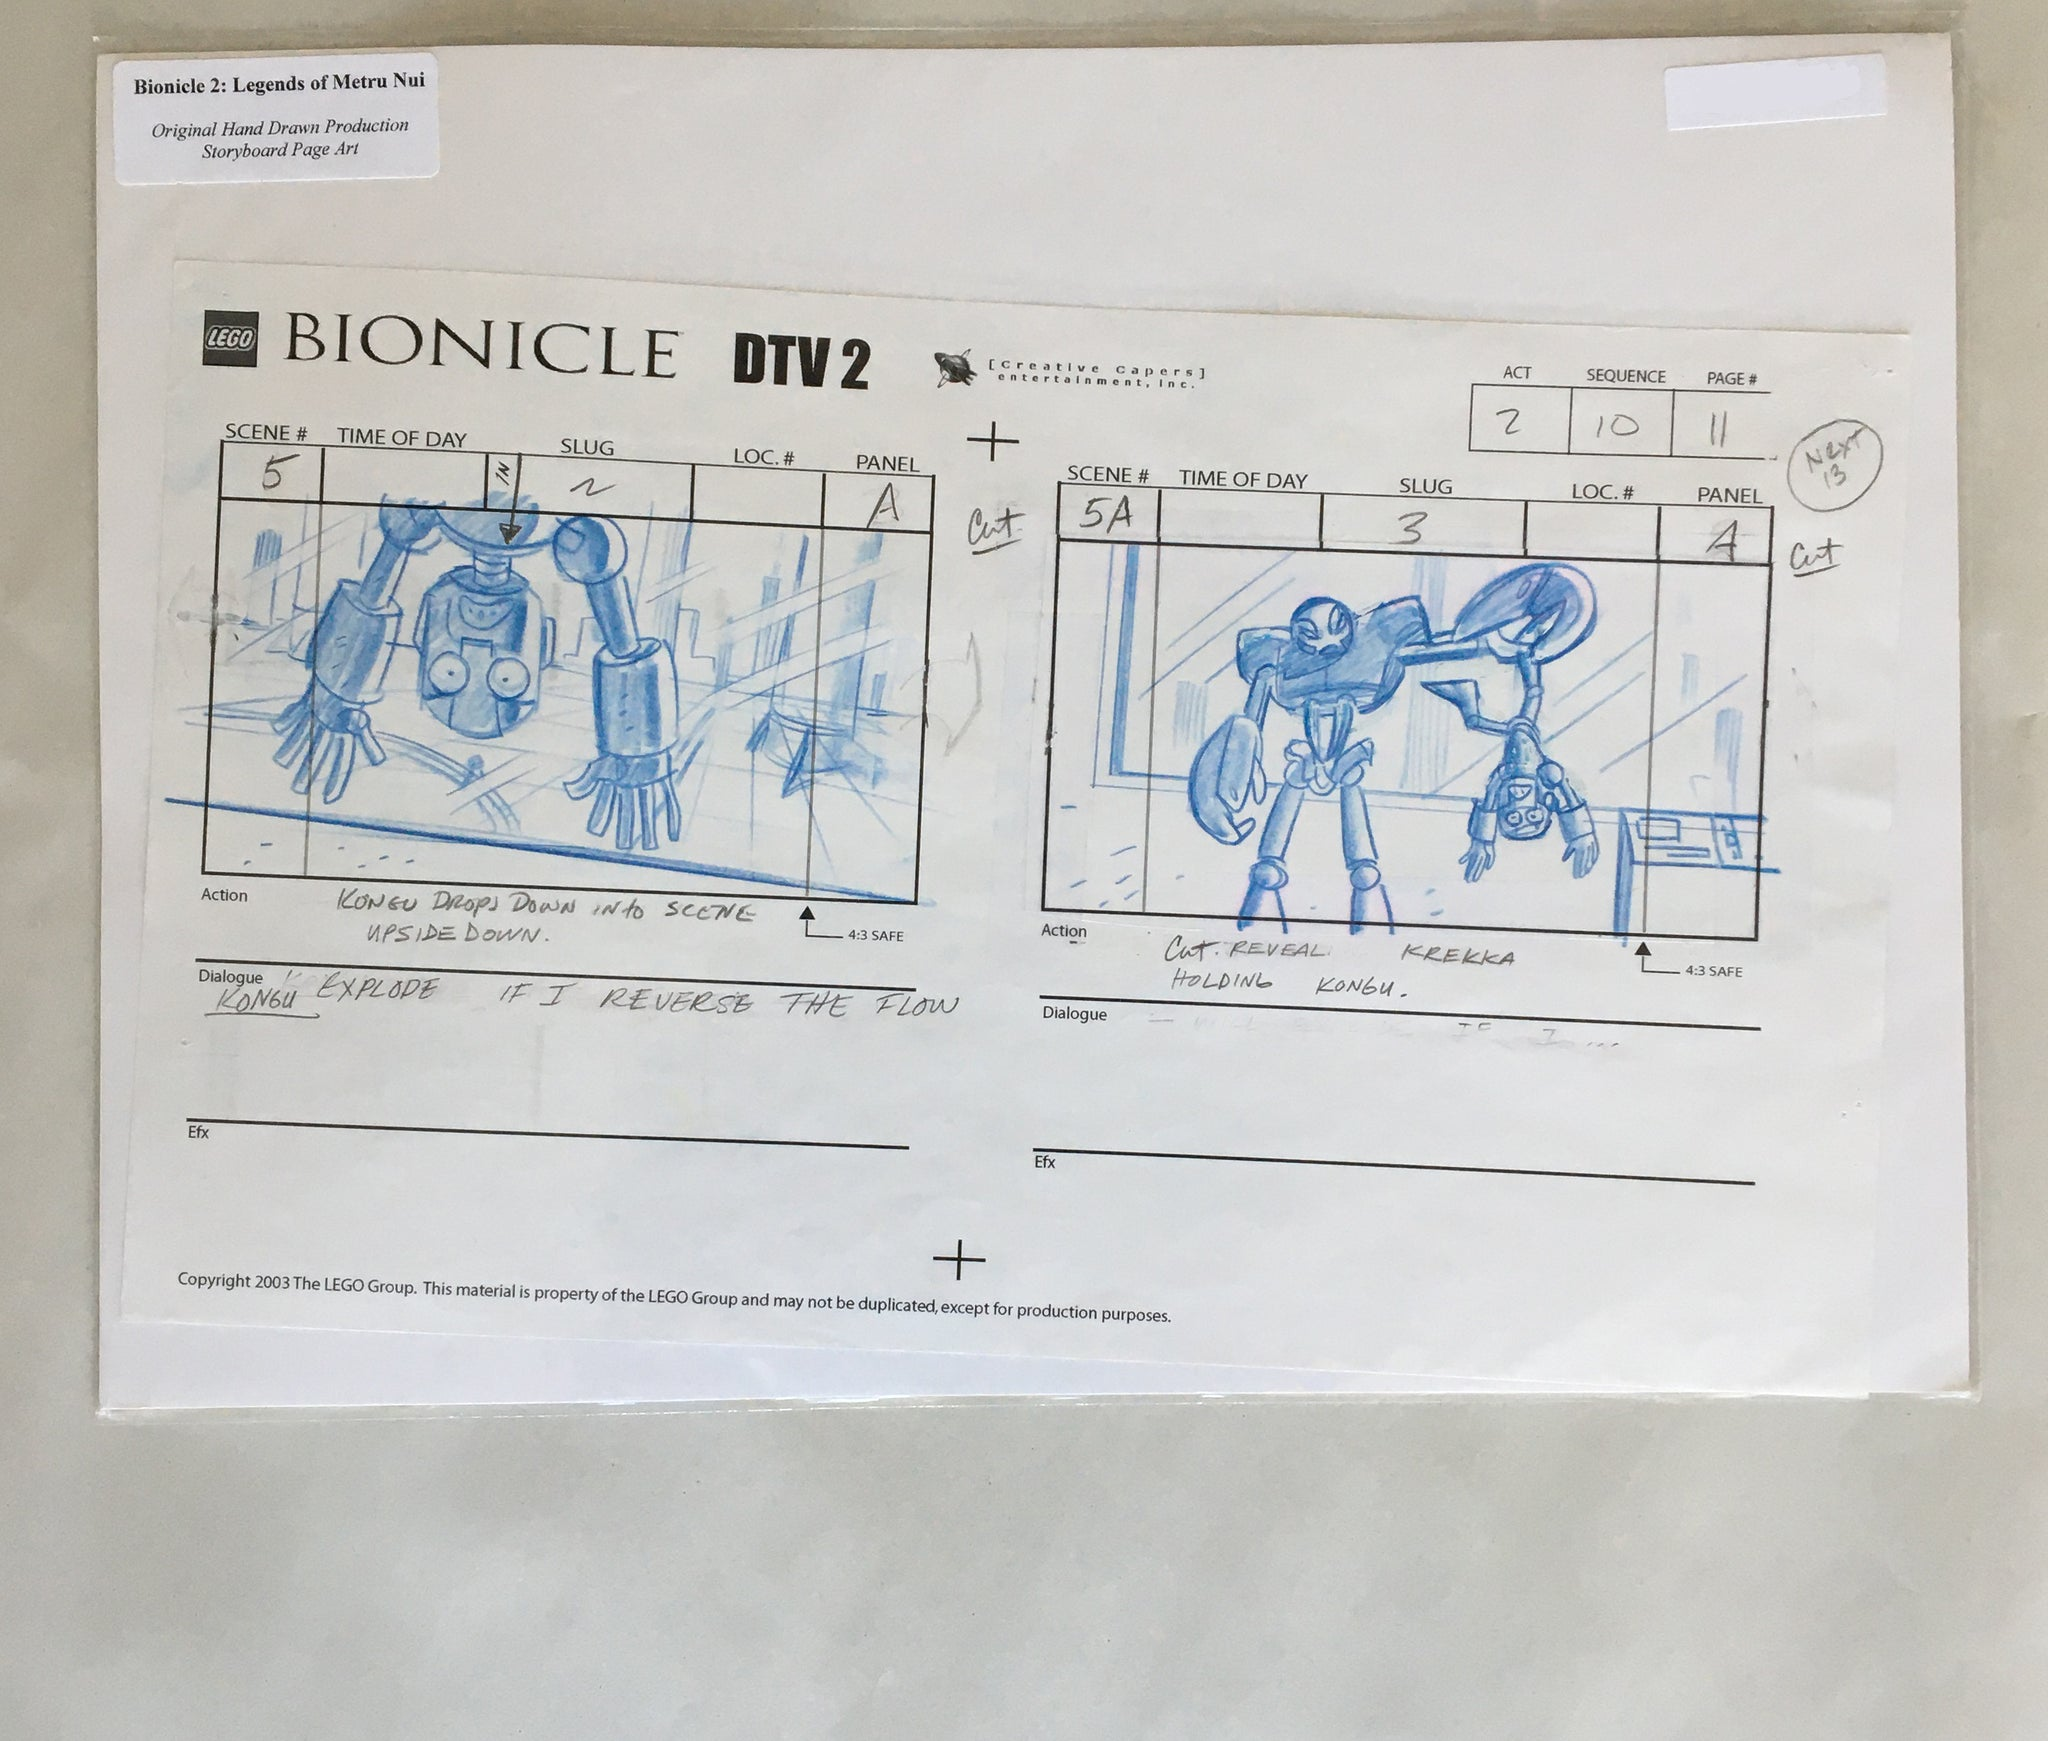 Lego Bionicle StoryBoard 6 (EX0064) - Animation Legends